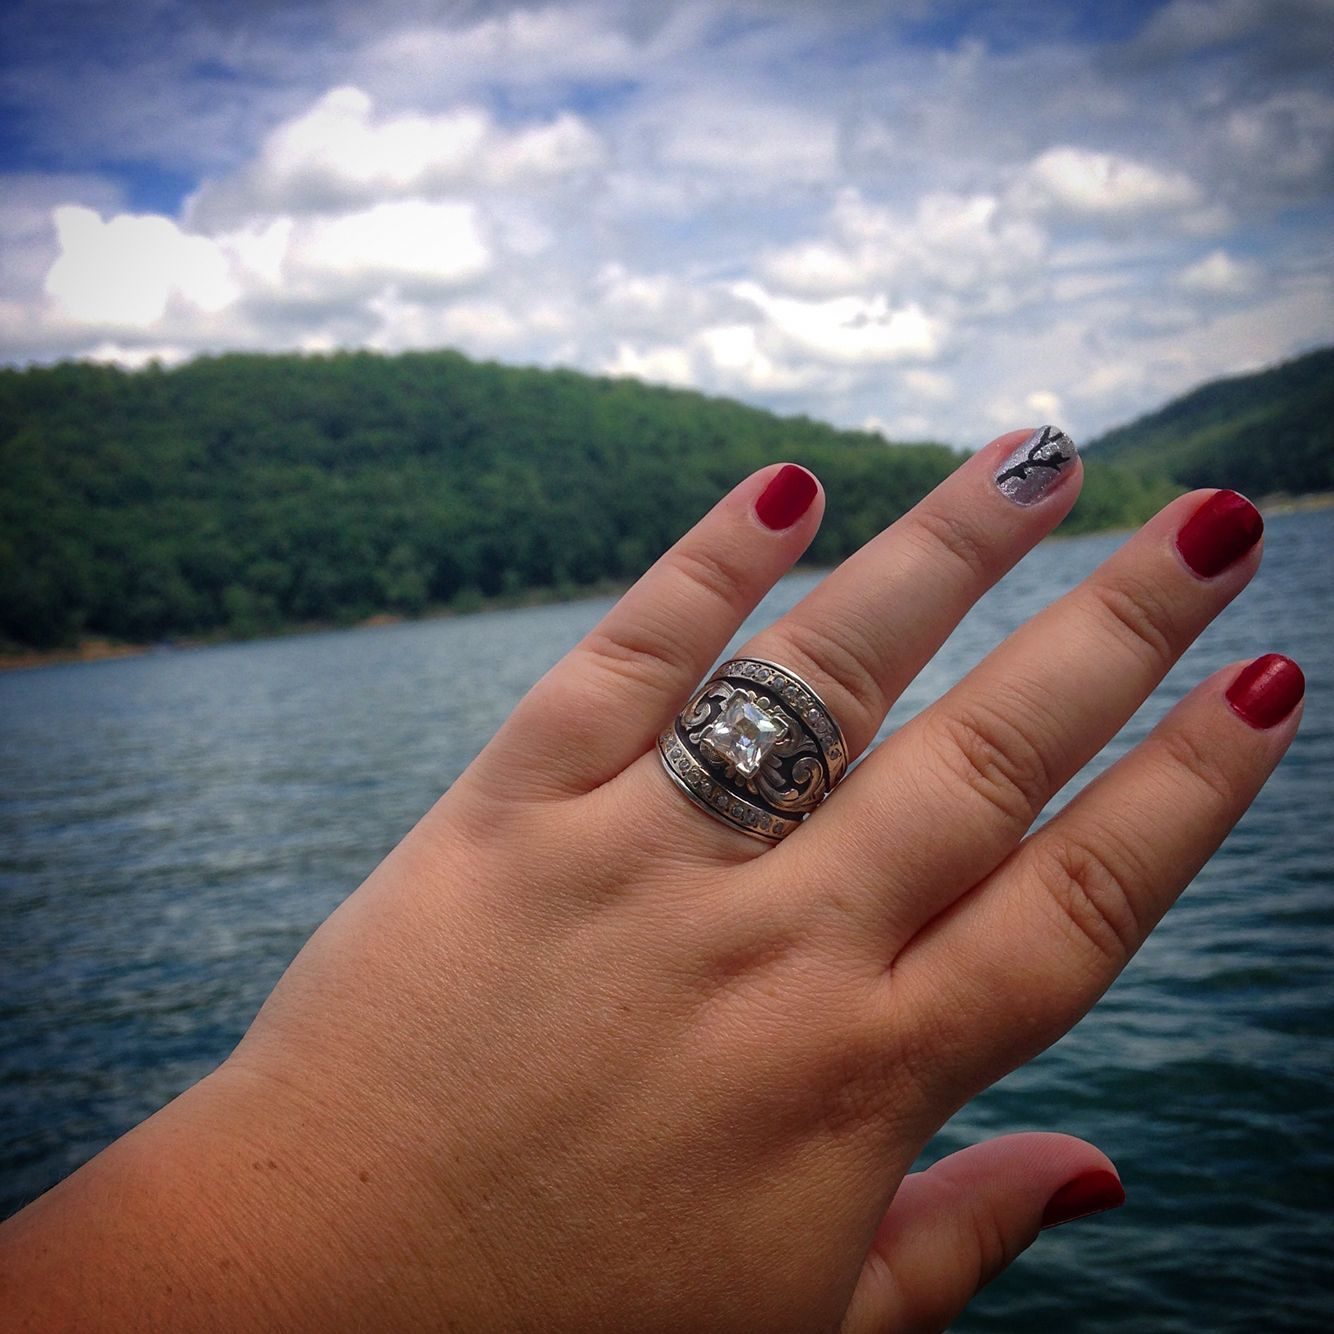 Hyo Silver engagement ring! Western, country, silver, big